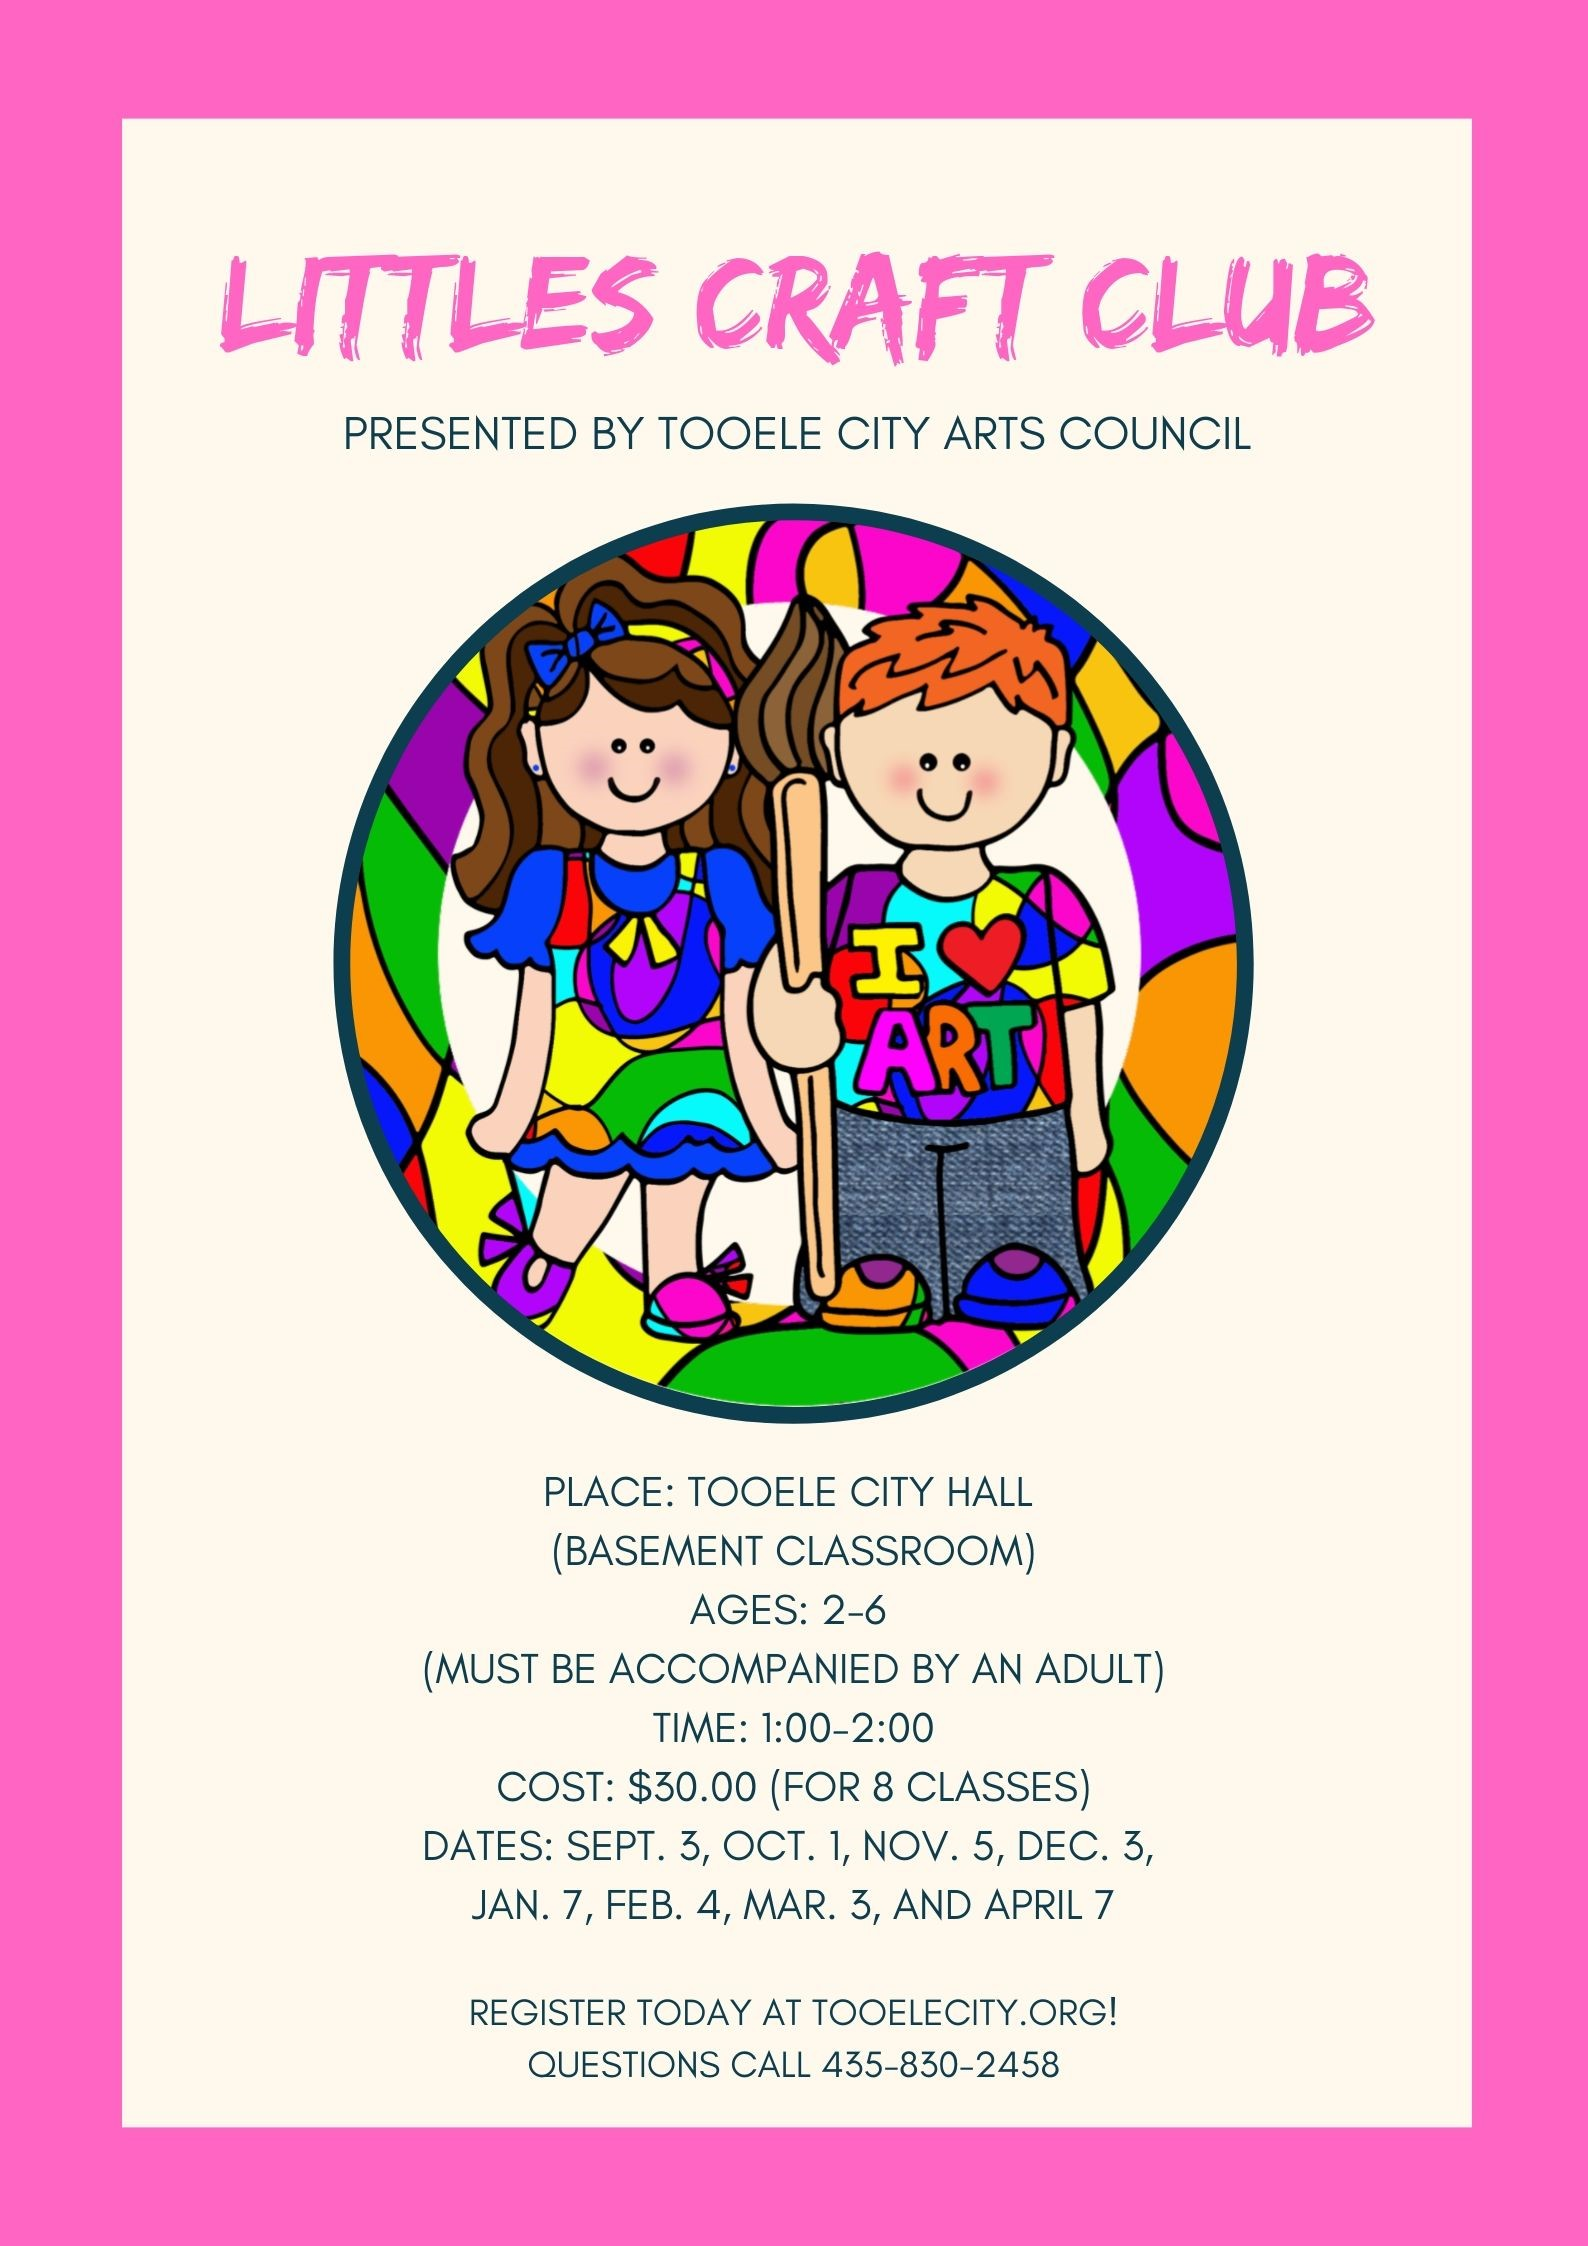 Littles Craft Club 2019 - 2020 @ Tooele City Hall | Tooele | Utah | United States